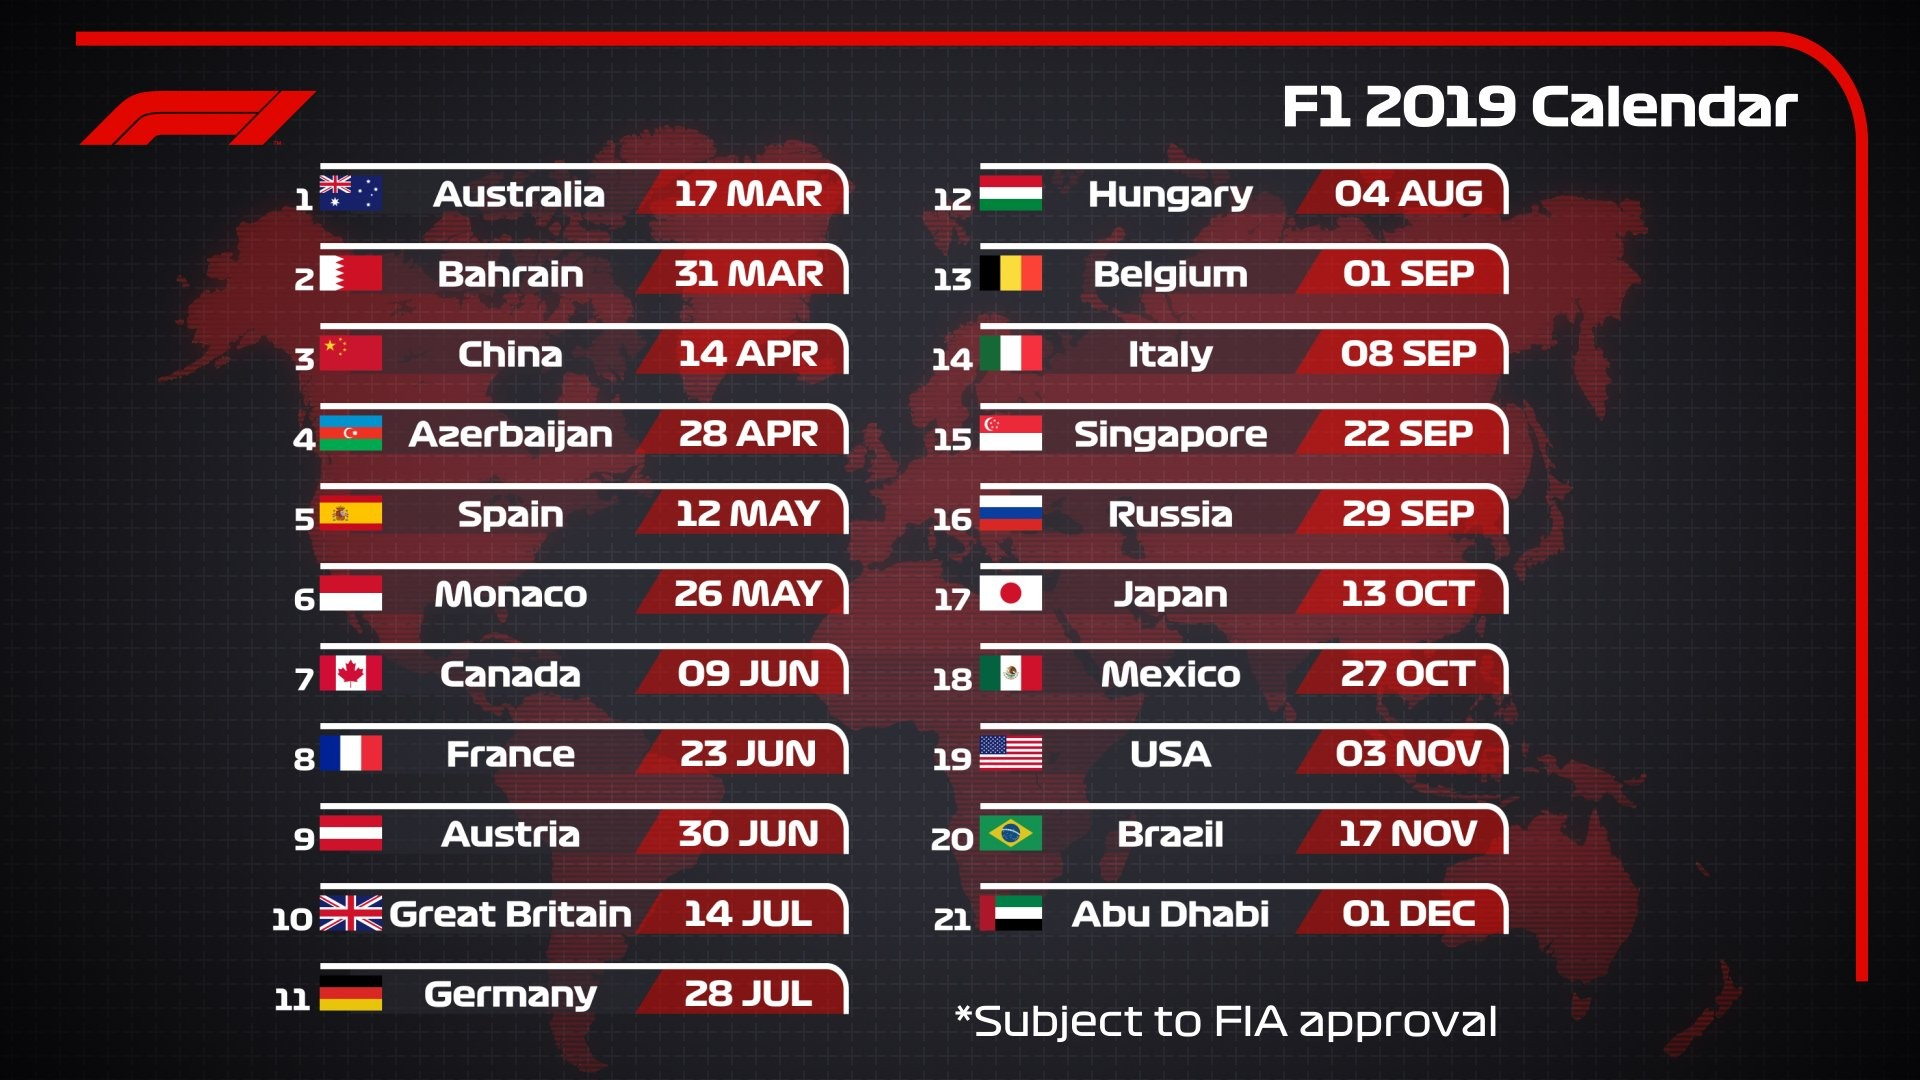 "Calendario 2019 F1 Más Actual formula 1 On Twitter ""2019 Draft F1 Calendar 🗓 21 Races 9 Of Calendario 2019 F1 Más Arriba-a-fecha Mercedes Amg Gls 63 My 2019 7 10"